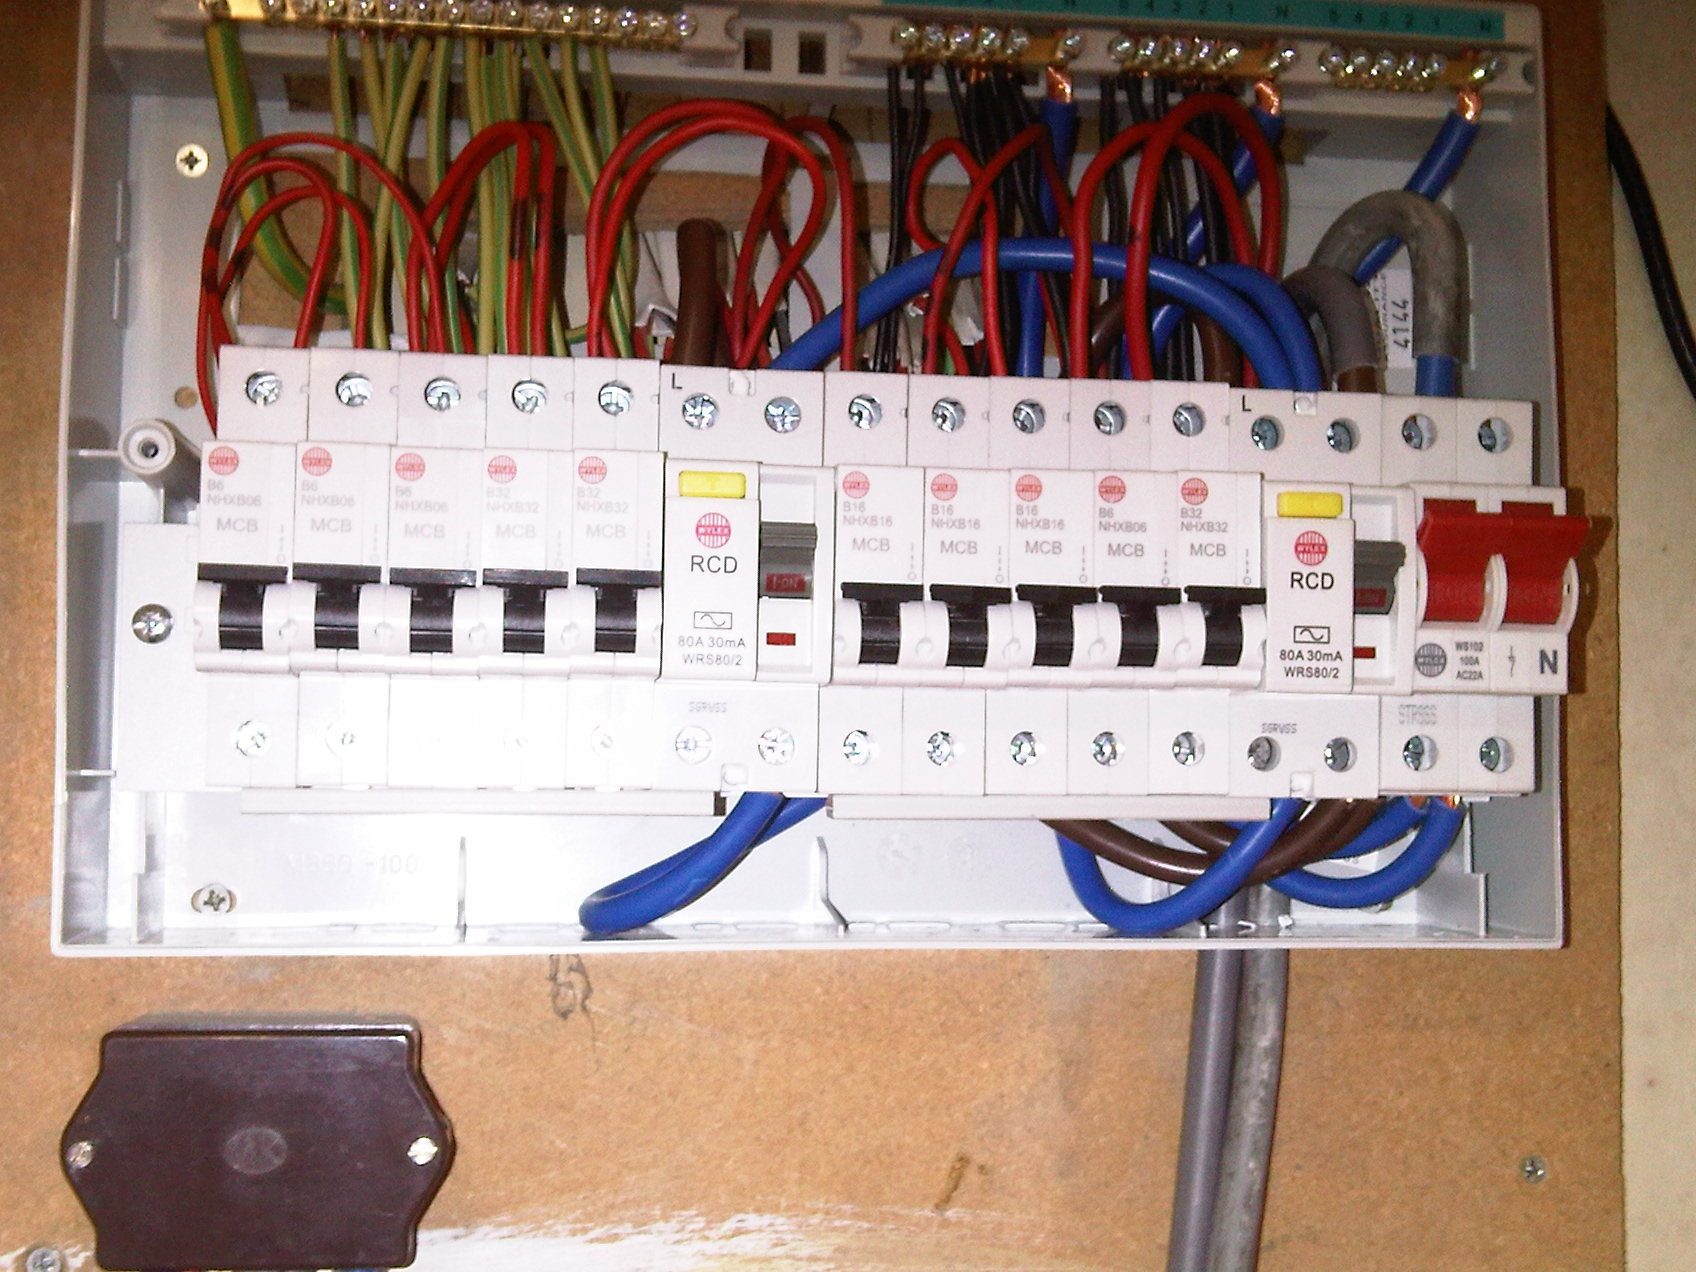 hight resolution of major fuse box wiring diagram main fuse box wiring diagram option mix main fuse box wiring